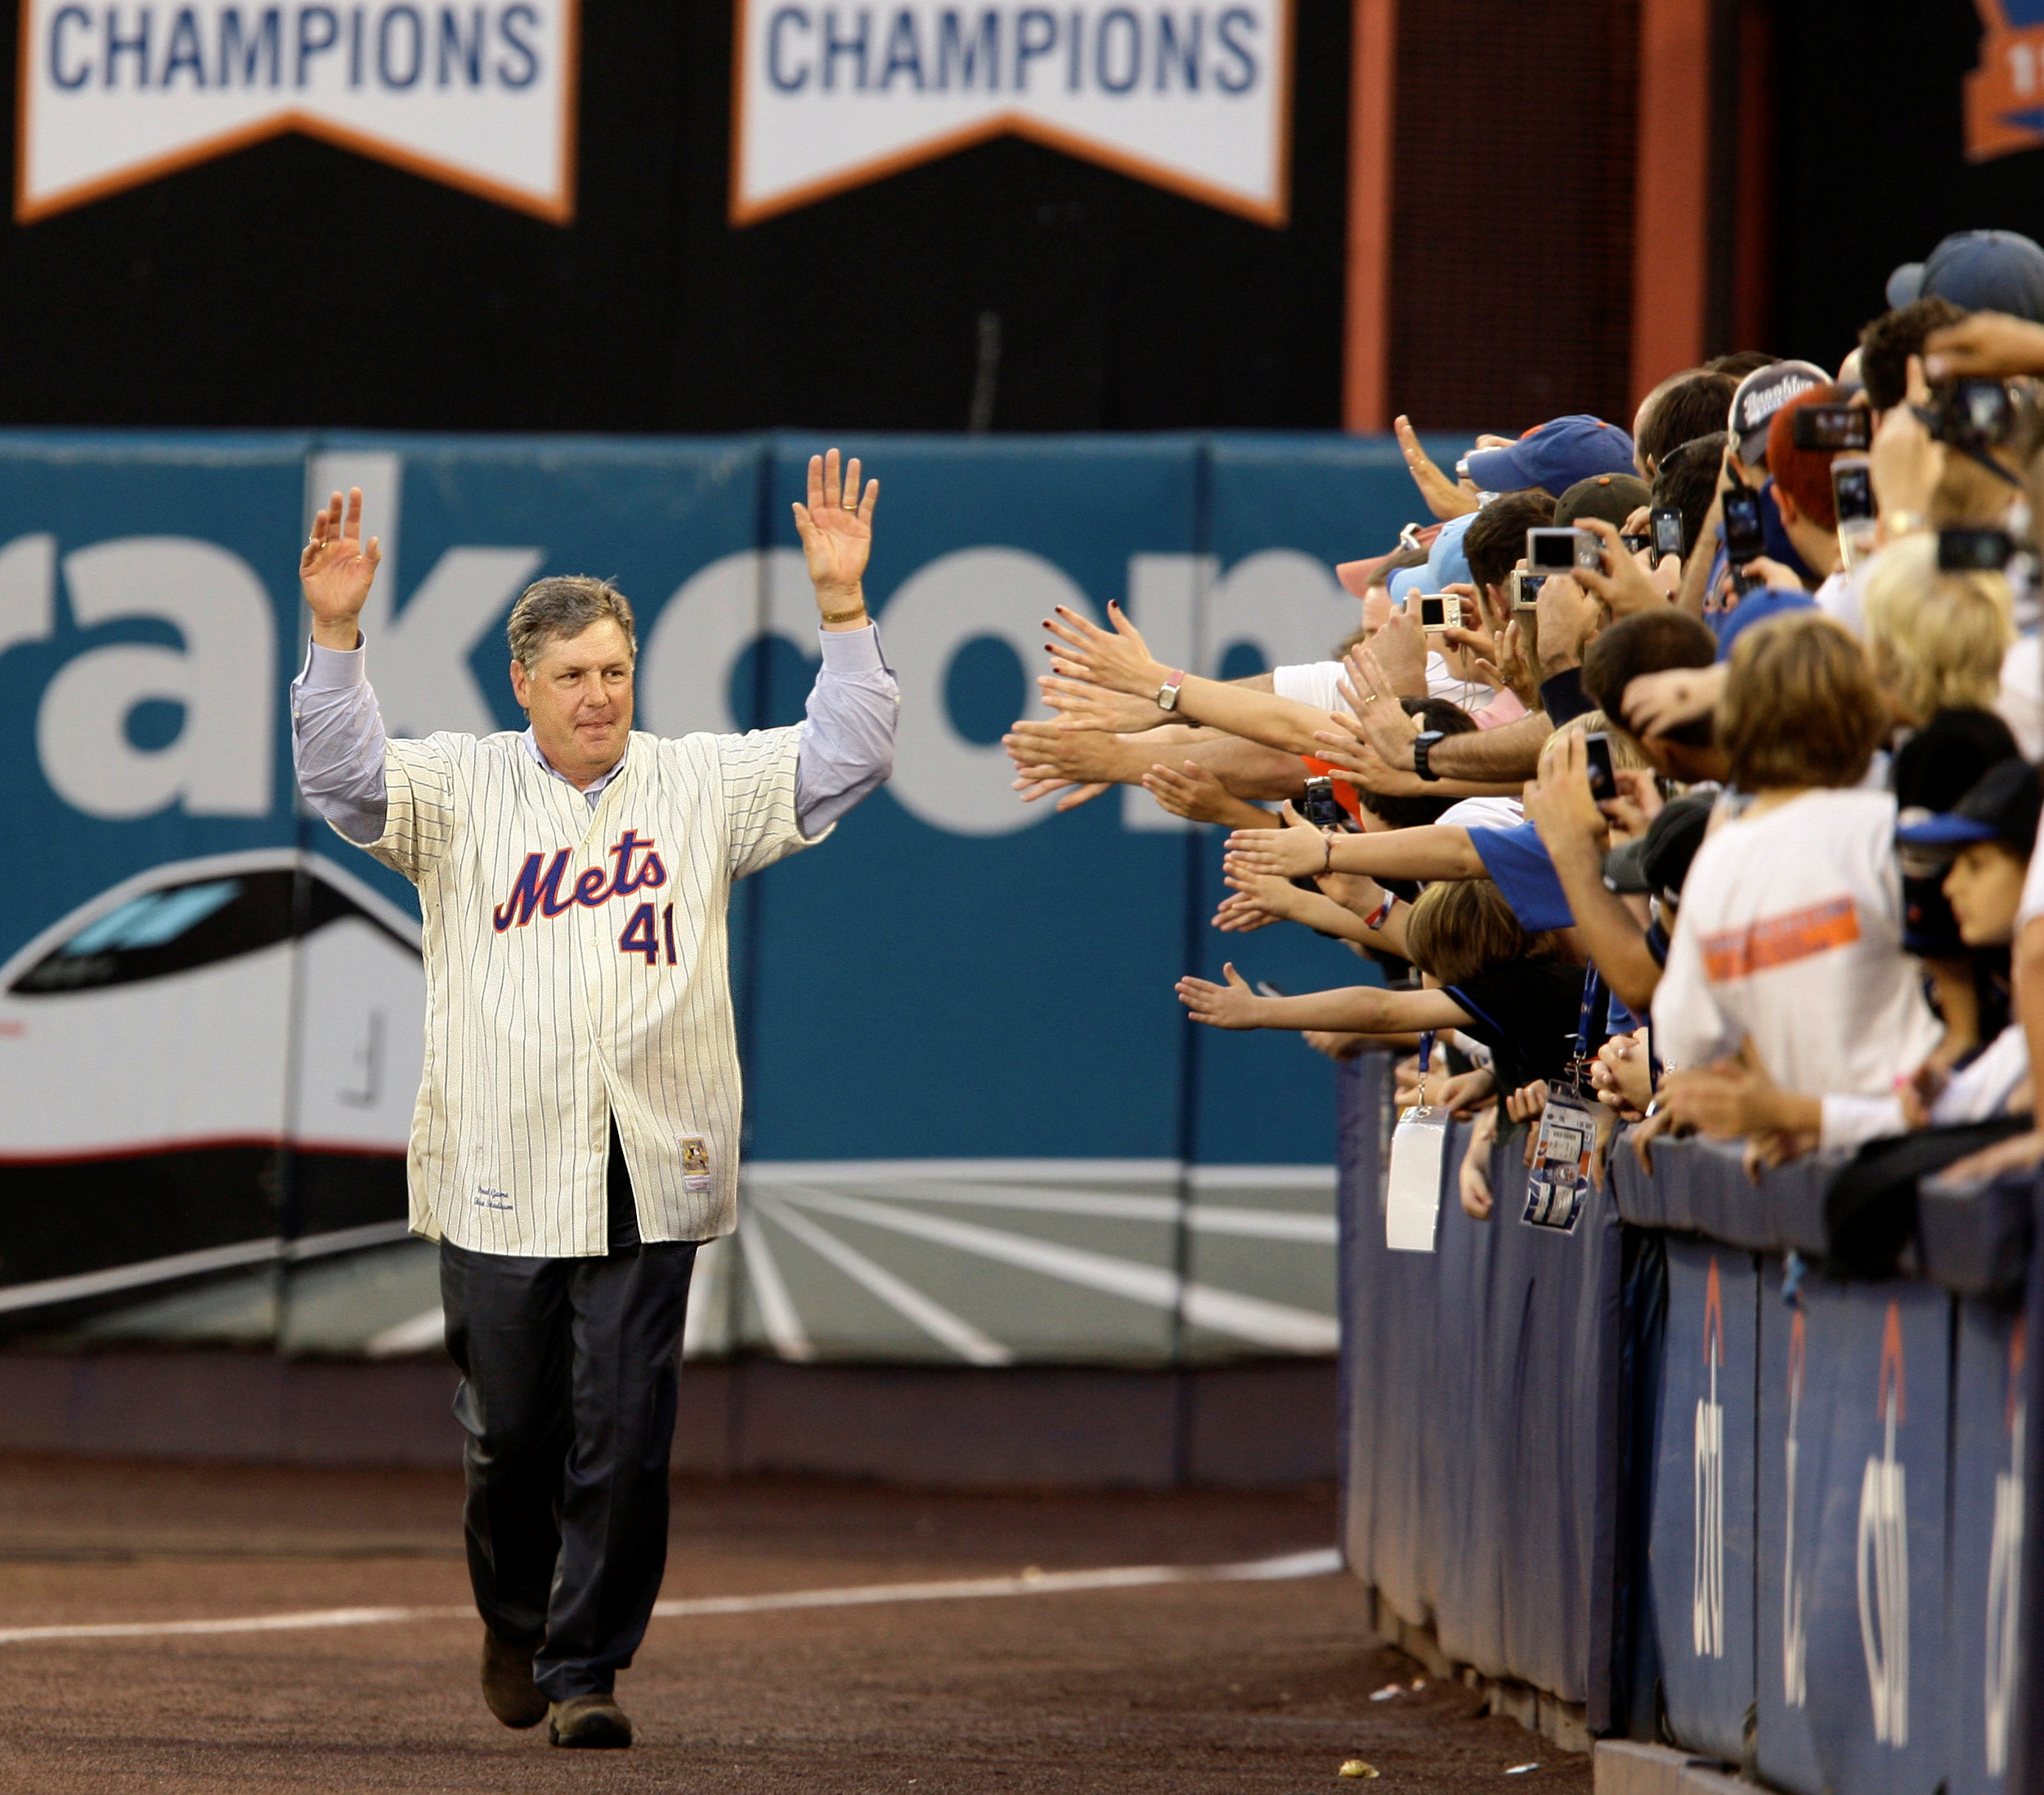 Hall of Fame pitcher Tom Seaver acknowledges the fans after the final game at shea stadium in 2008. AP Photo/Kathy Willens, File.